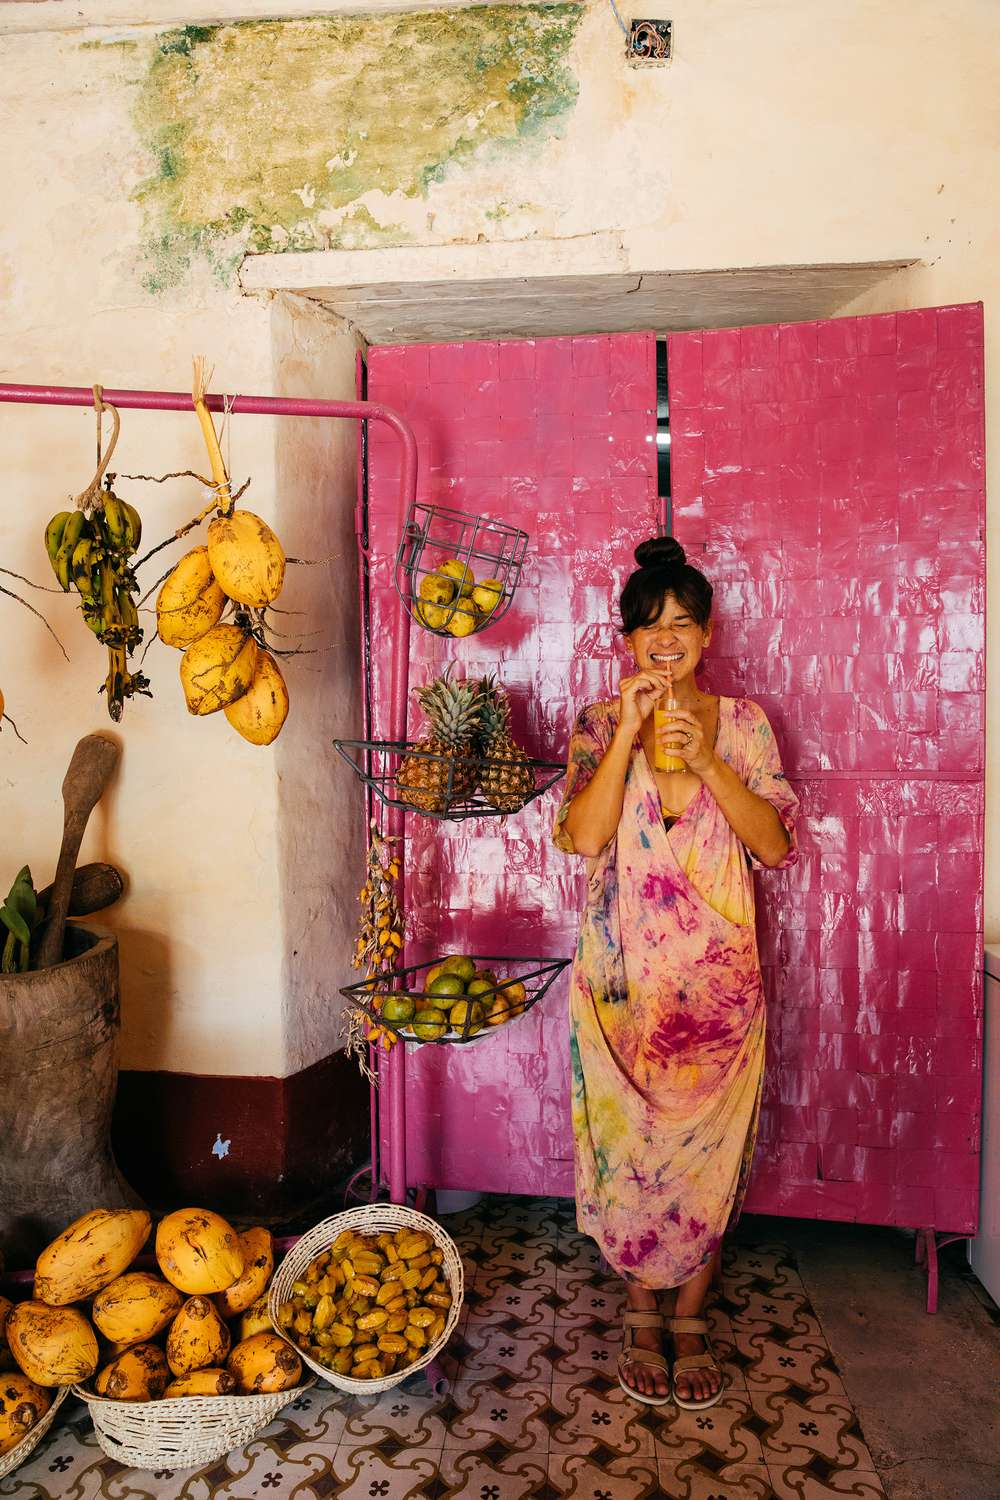 Tara Michie stands by fruit in Cuban shop